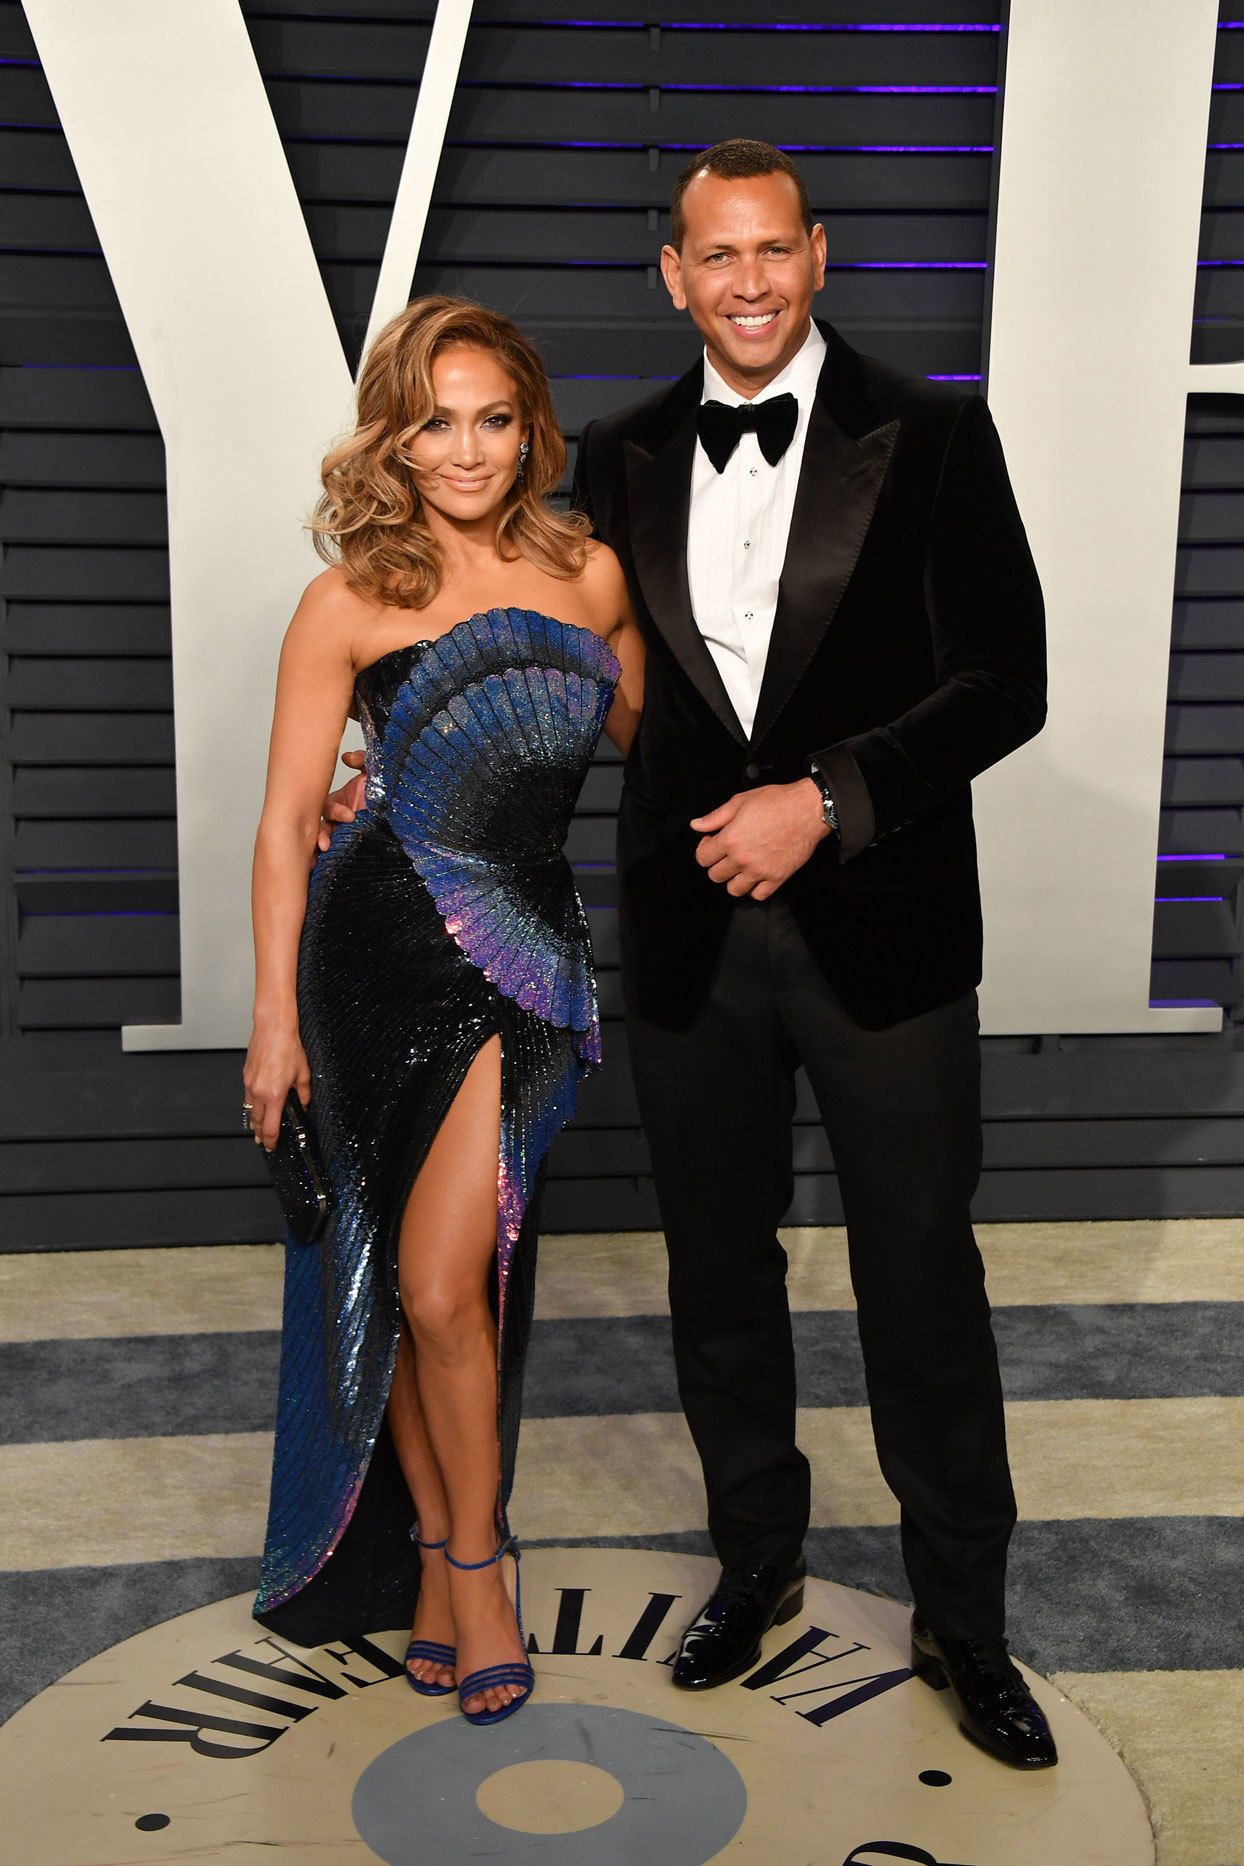 J.Lo and Alex Rodriguez